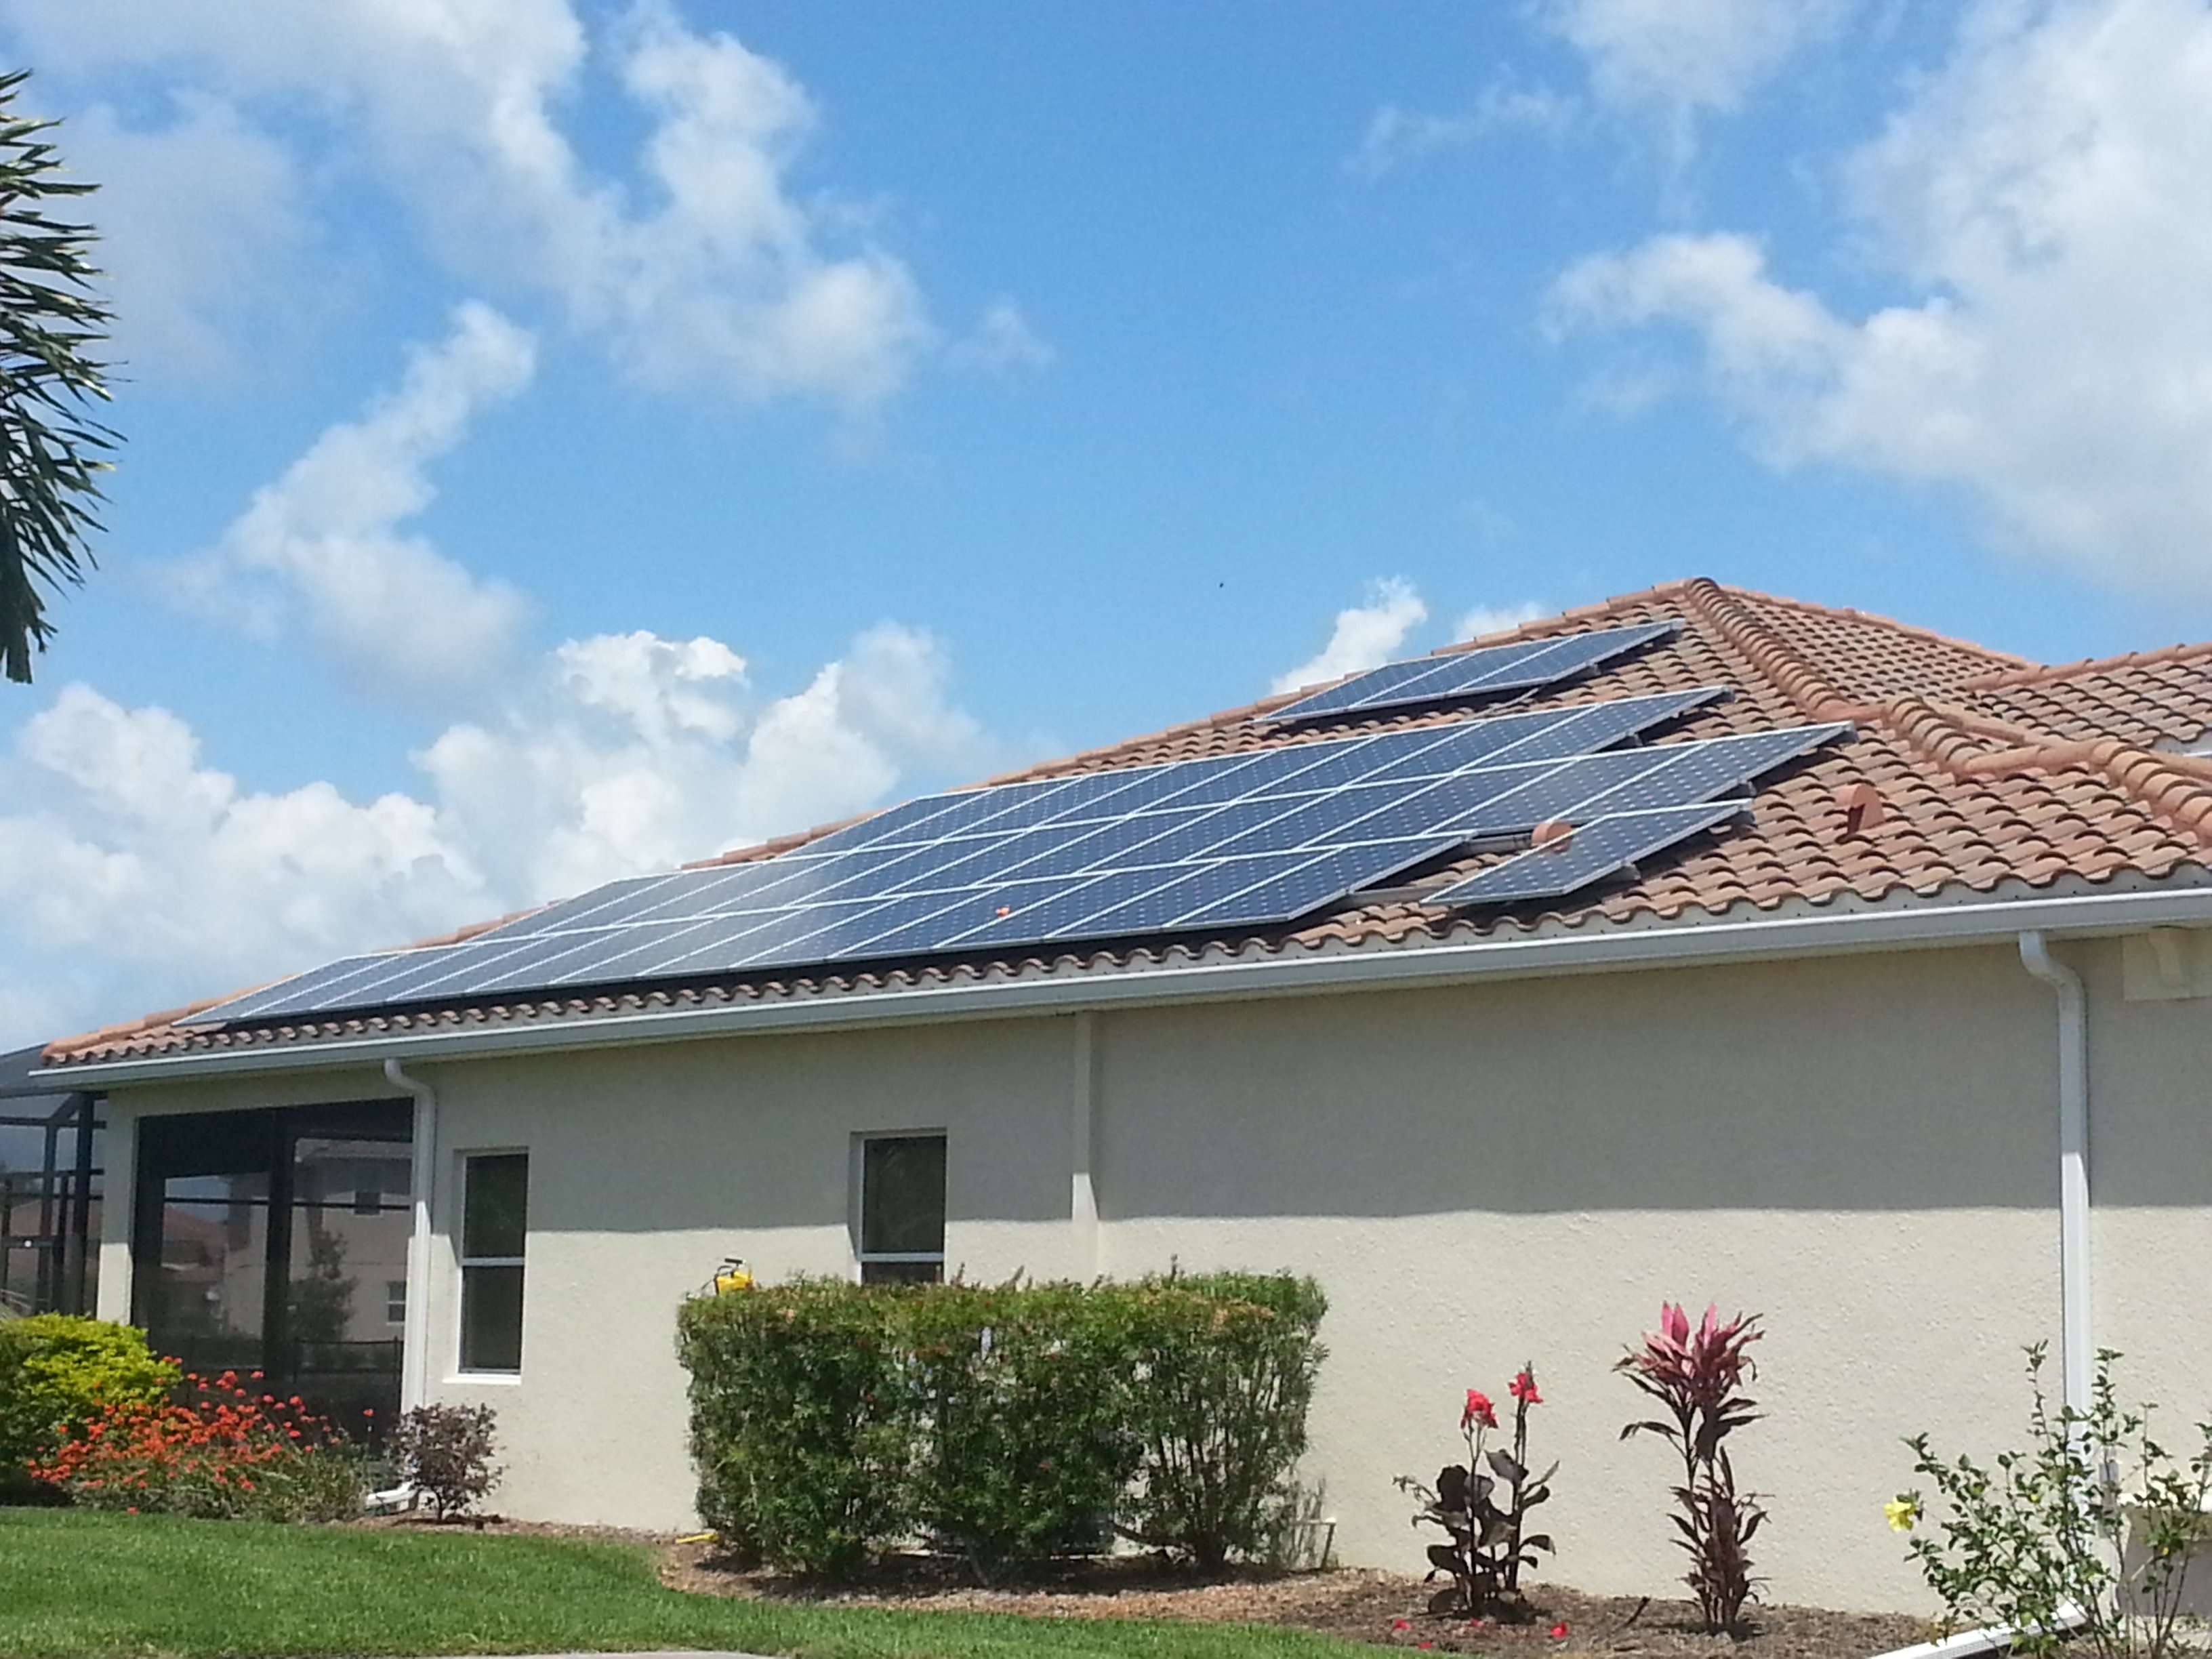 Residential Solar Power Why Go Brilliant Harvest 941 359 Energy Systems Electricity For Your Home Cells But A Electric System From Locks In Costs Paying Itself Just